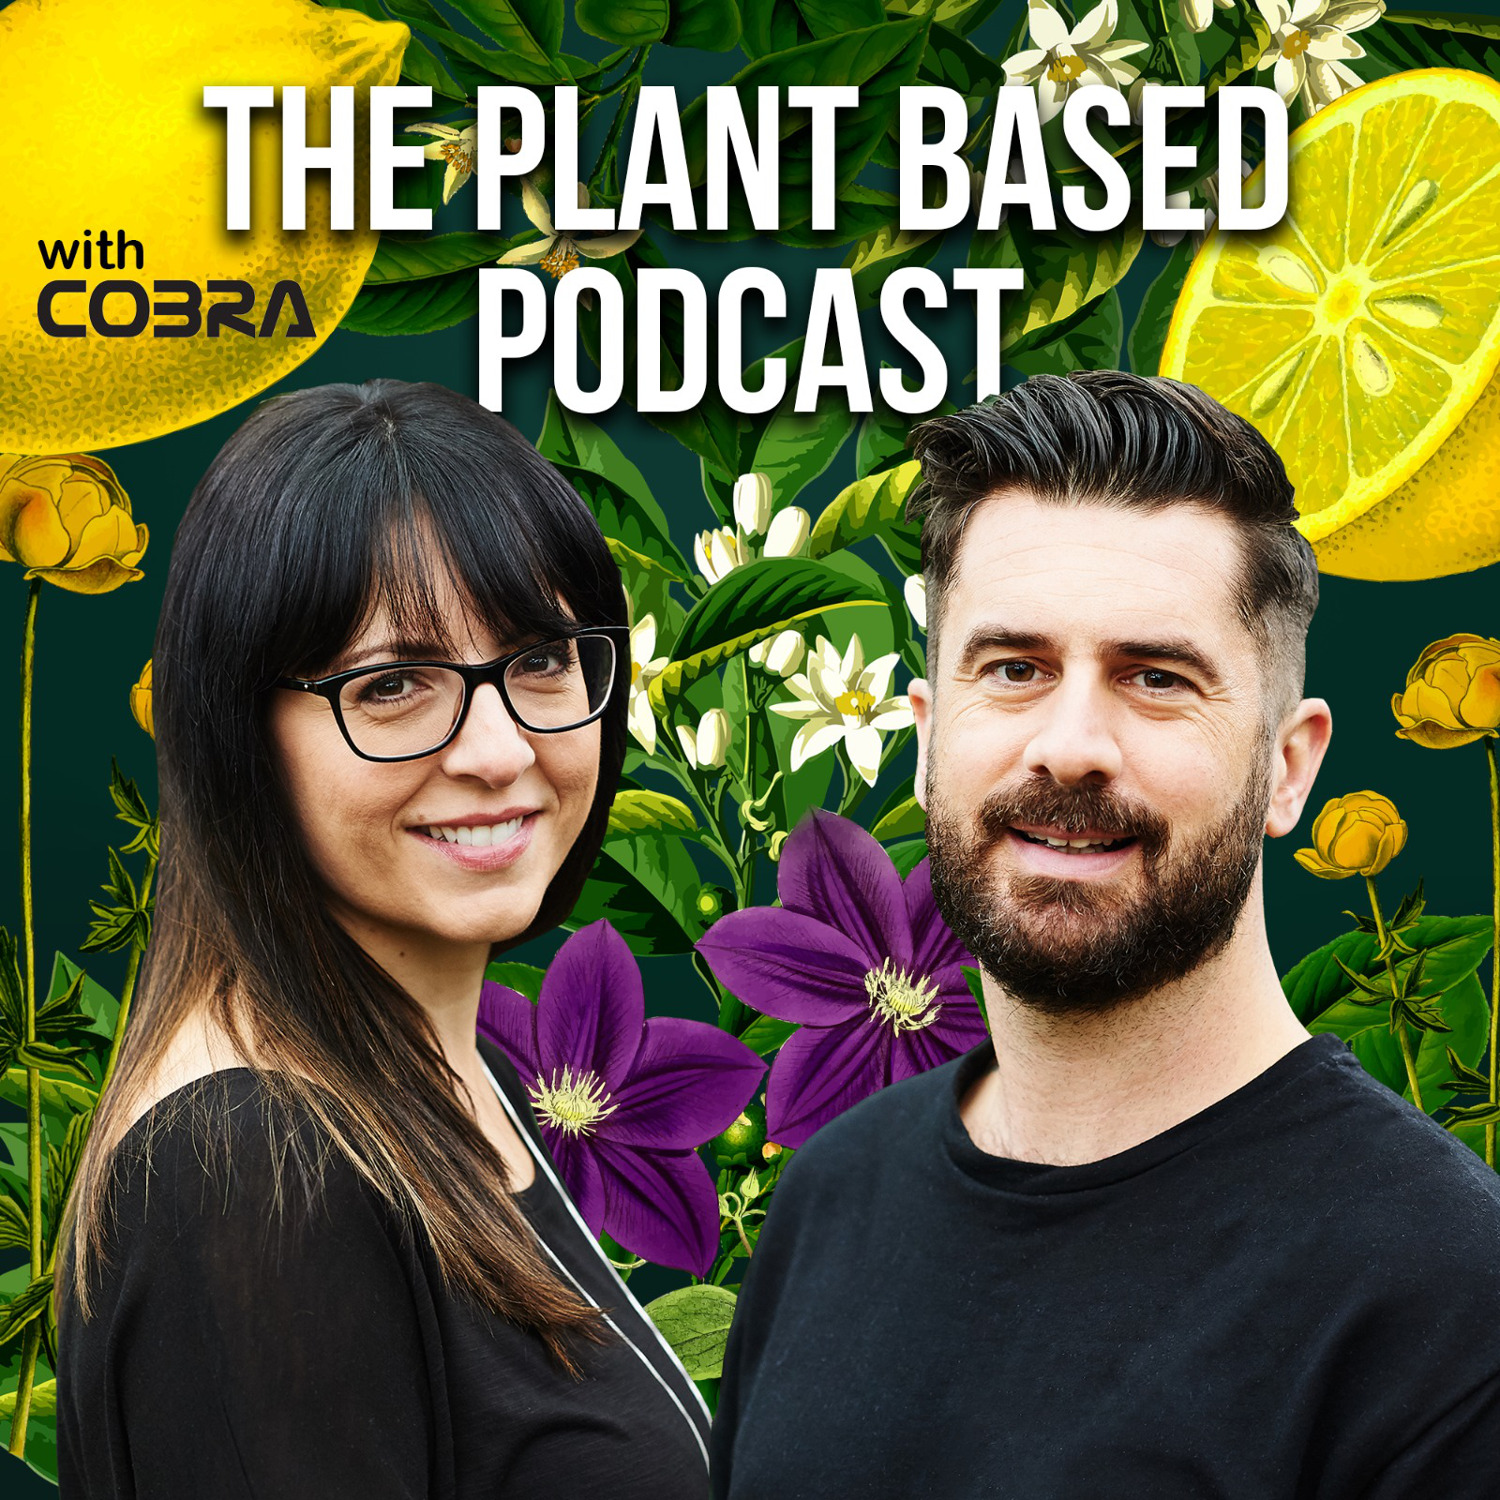 The Plant Based Podcast S4 - News 20/06/21